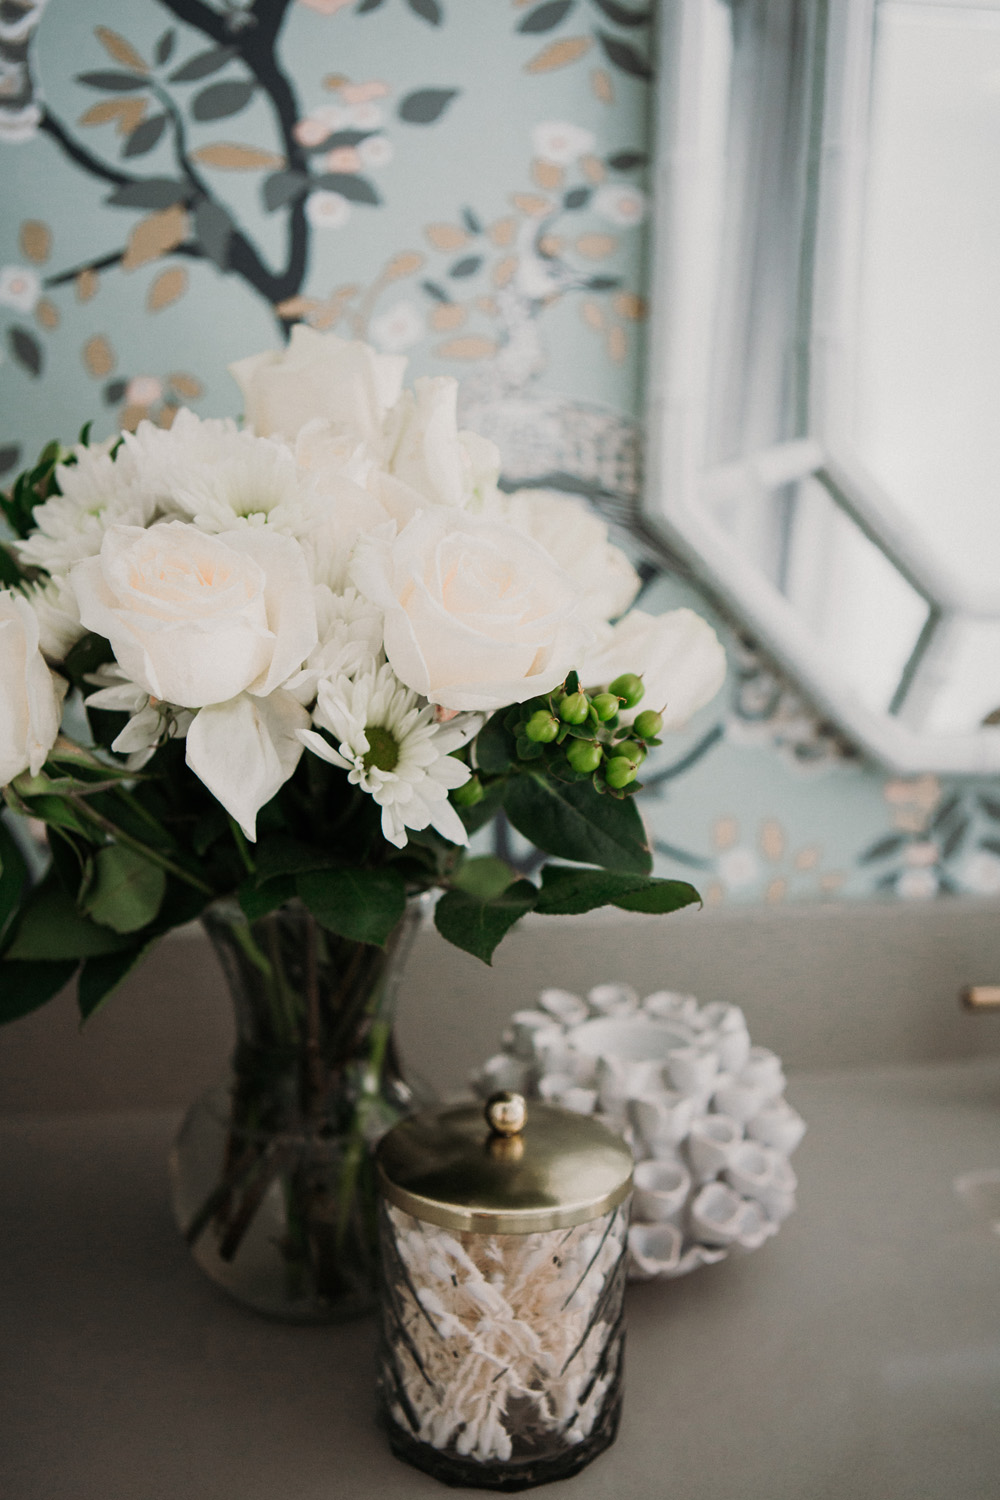 flowers on bathroom counter